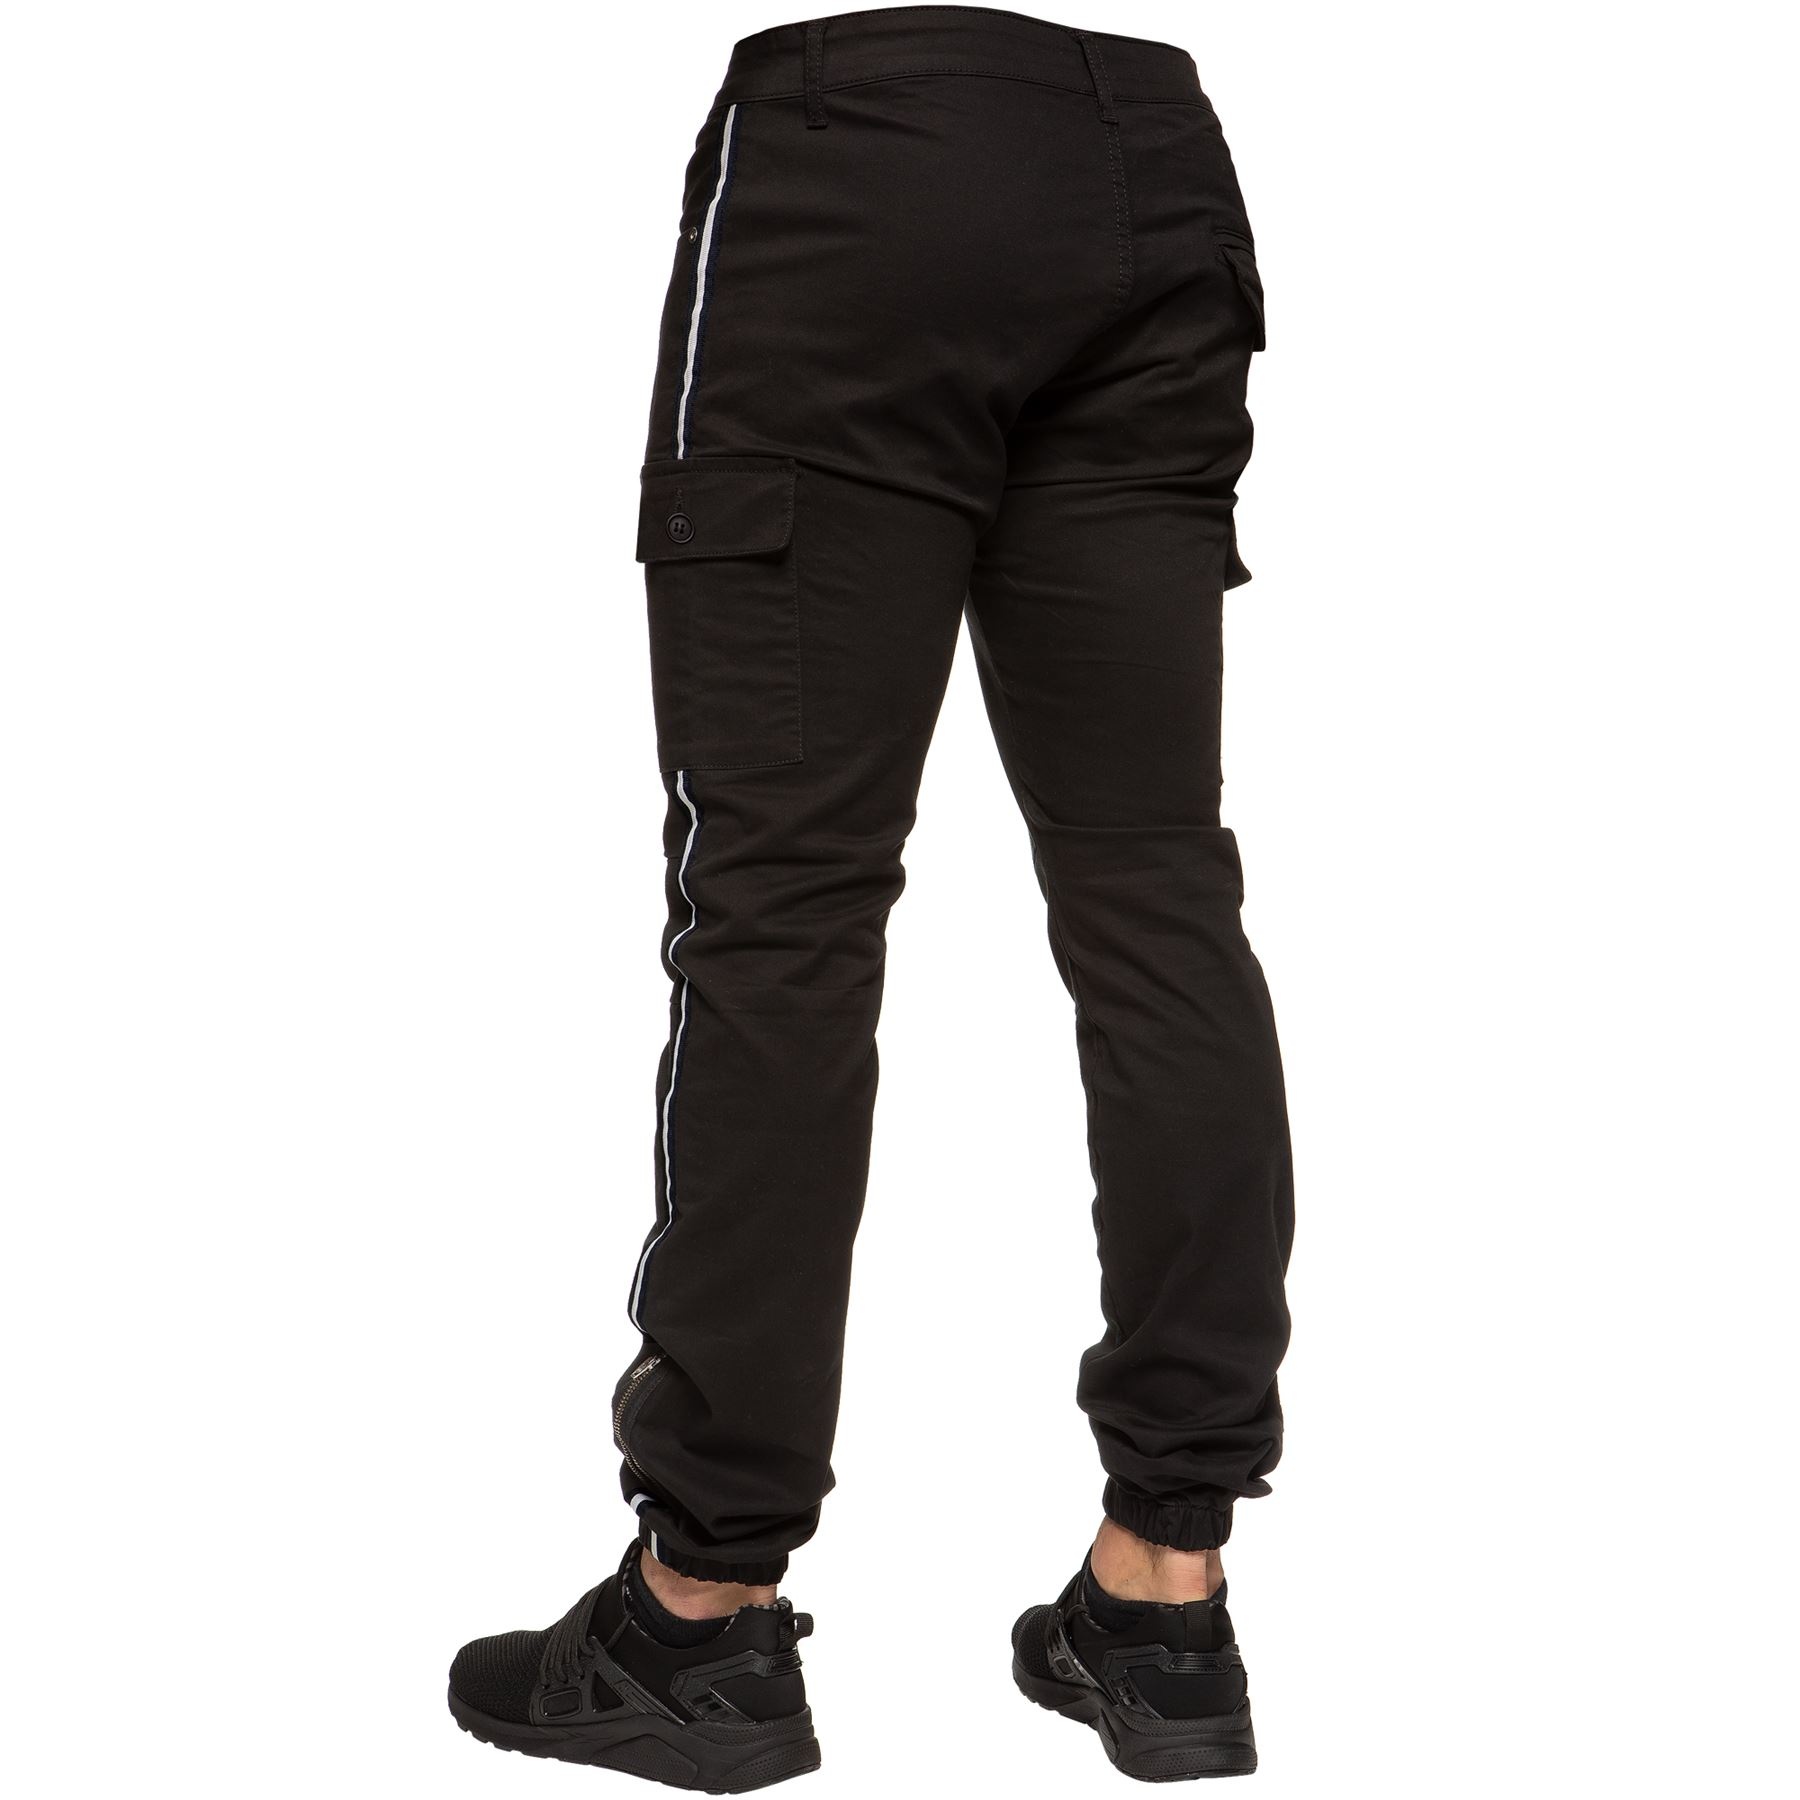 Enzo-Jeans-Mens-Combat-Trousers-Cargo-Chinos-Slim-Stretch-Cuffed-Joggers-Pants thumbnail 5